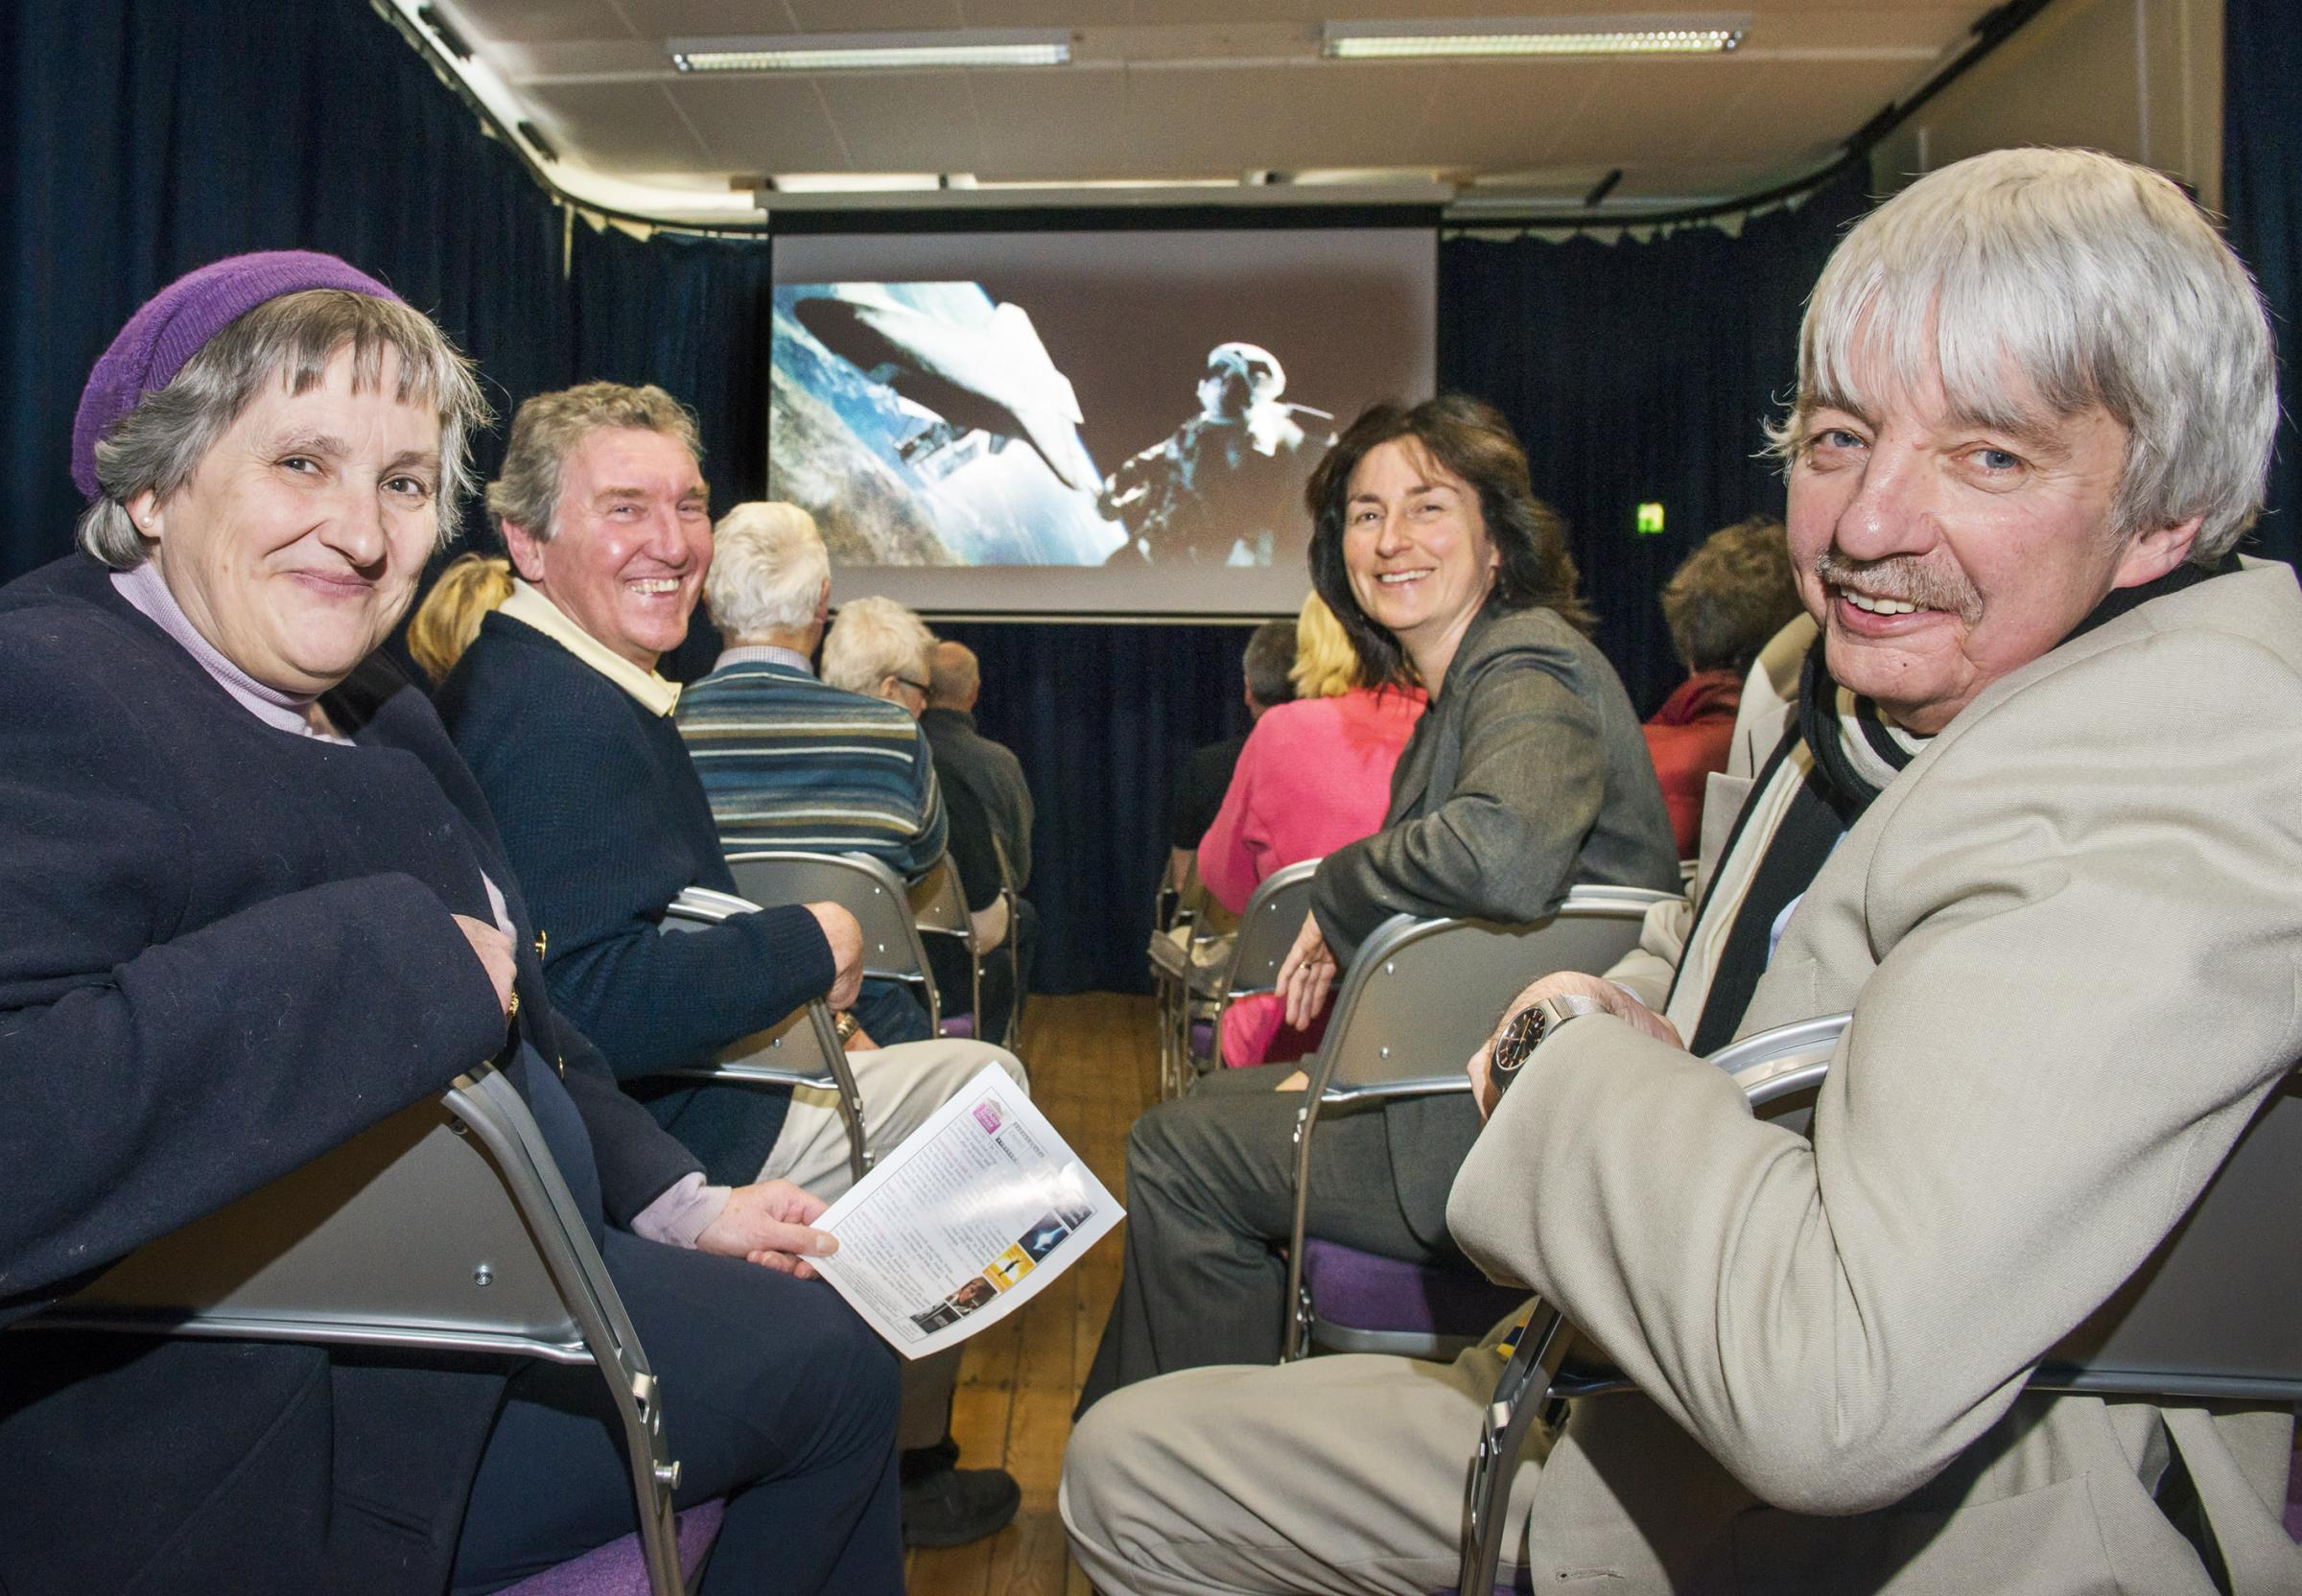 from back row: Dawn Clarkson and John Smith from Leyburn Arts Centre Ltd, Jane Ritchie MBE